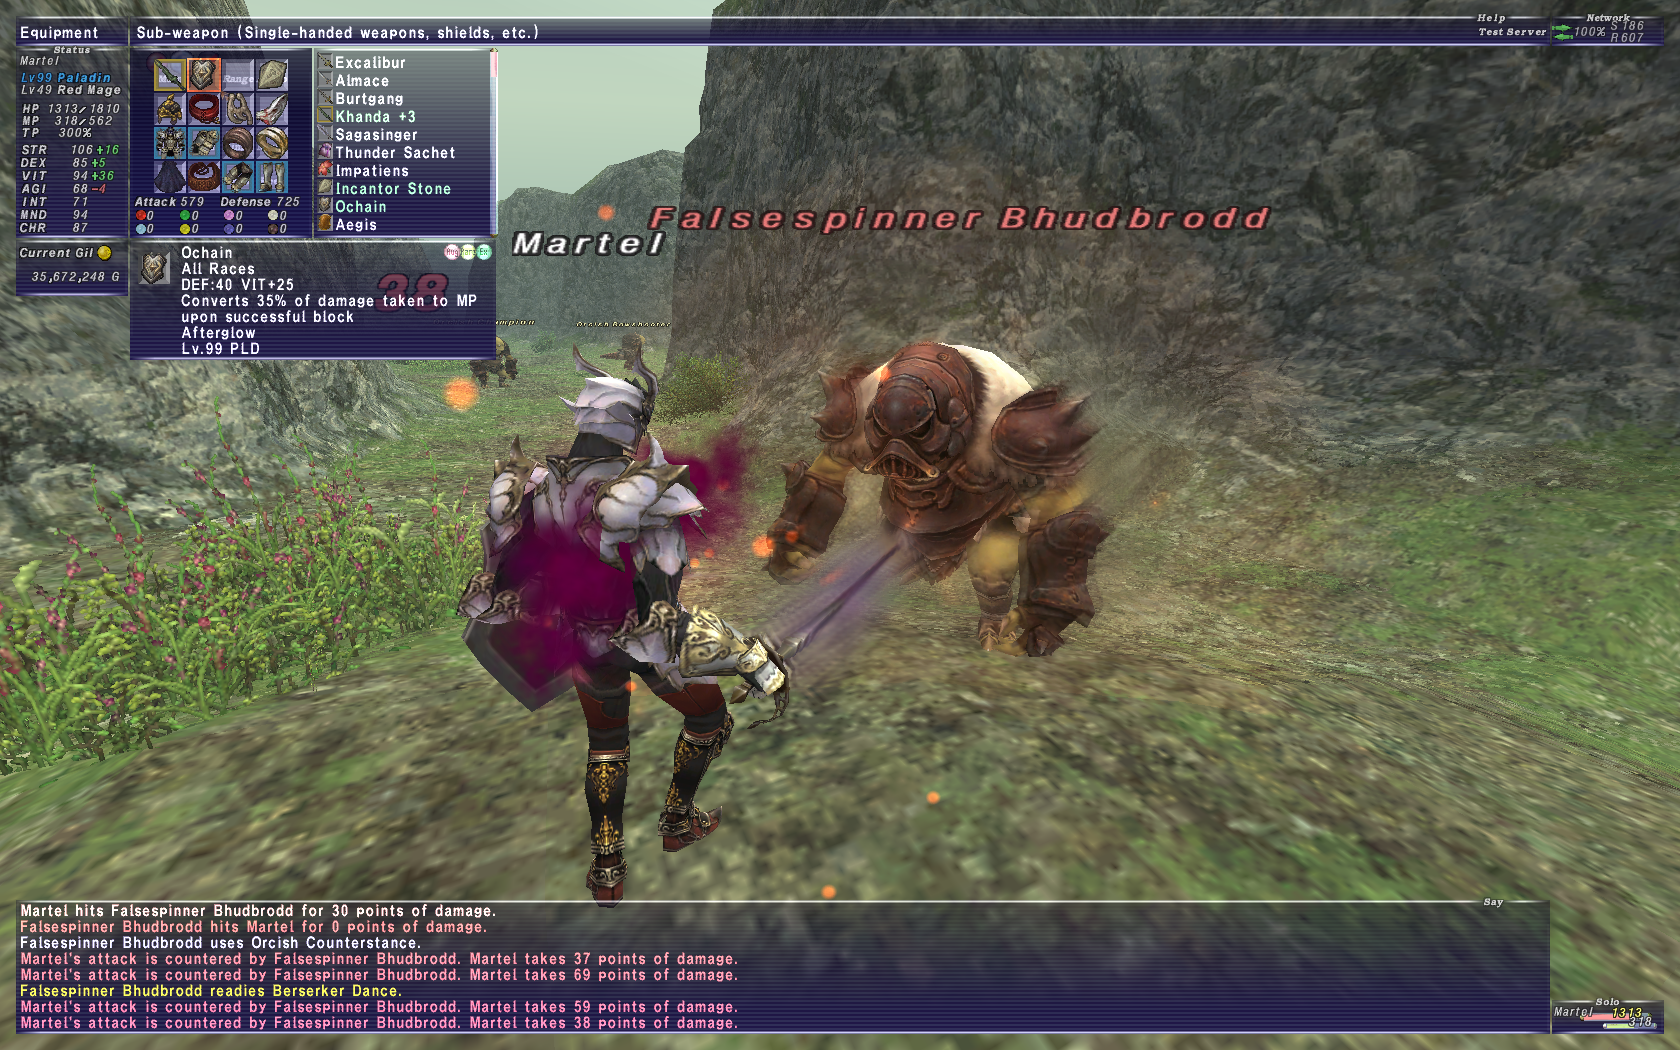 martel ffxi mining this will home update just popcorn where starting finished found restructured data findings server test updates previous